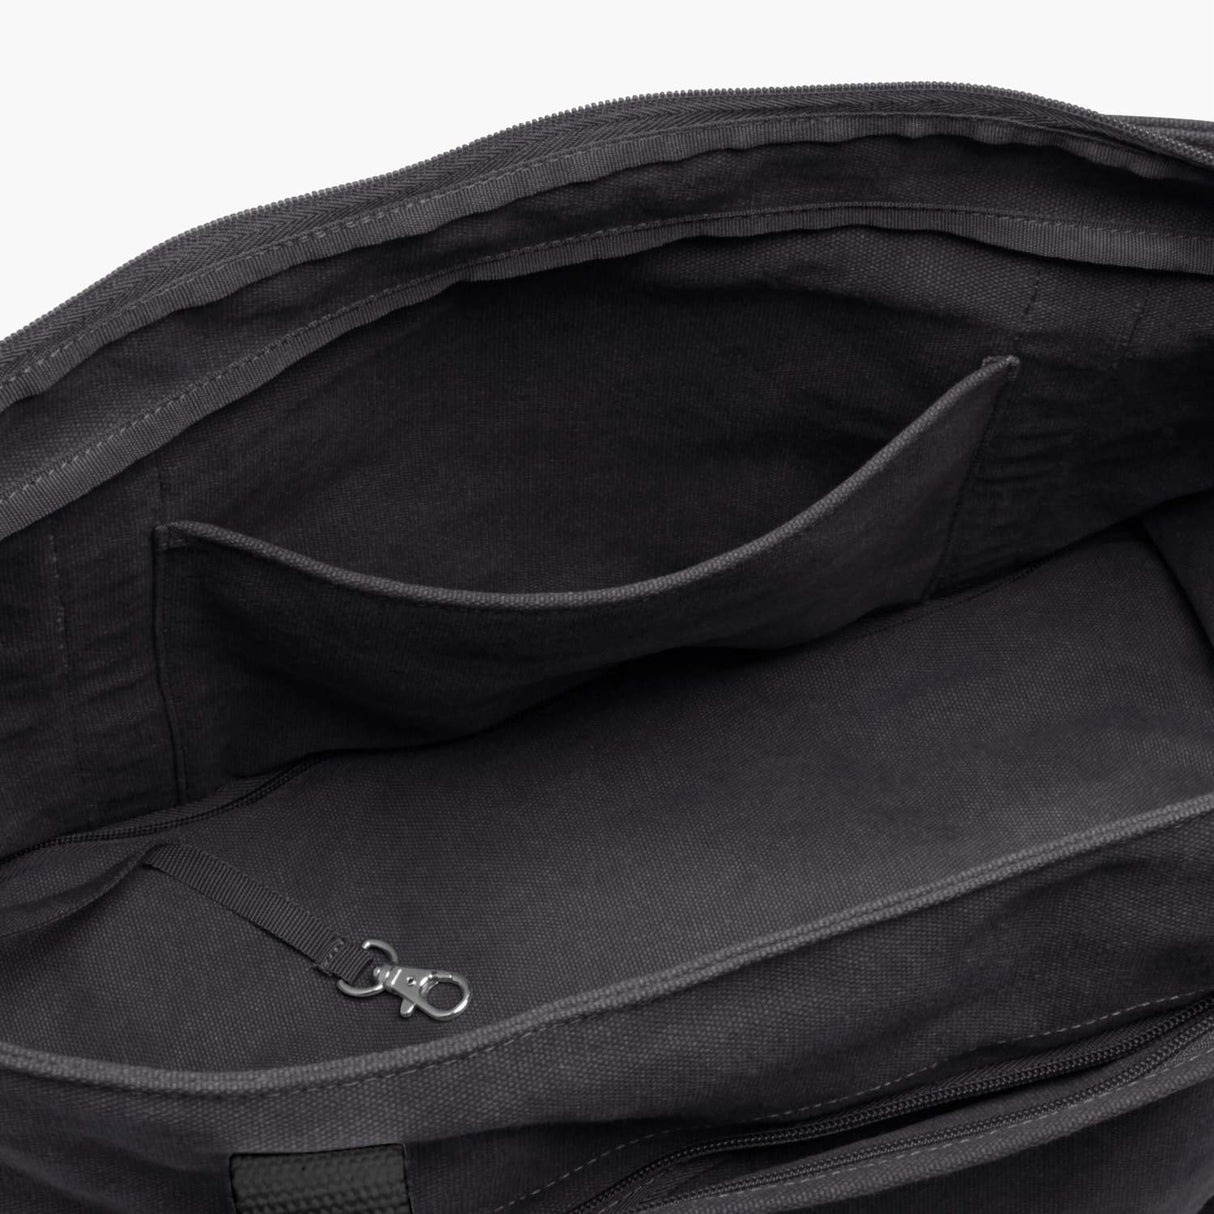 Interior Pocket - The Catalina Deluxe Tote - Washed Canvas - Midnight Ash - Tote - Lo & Sons